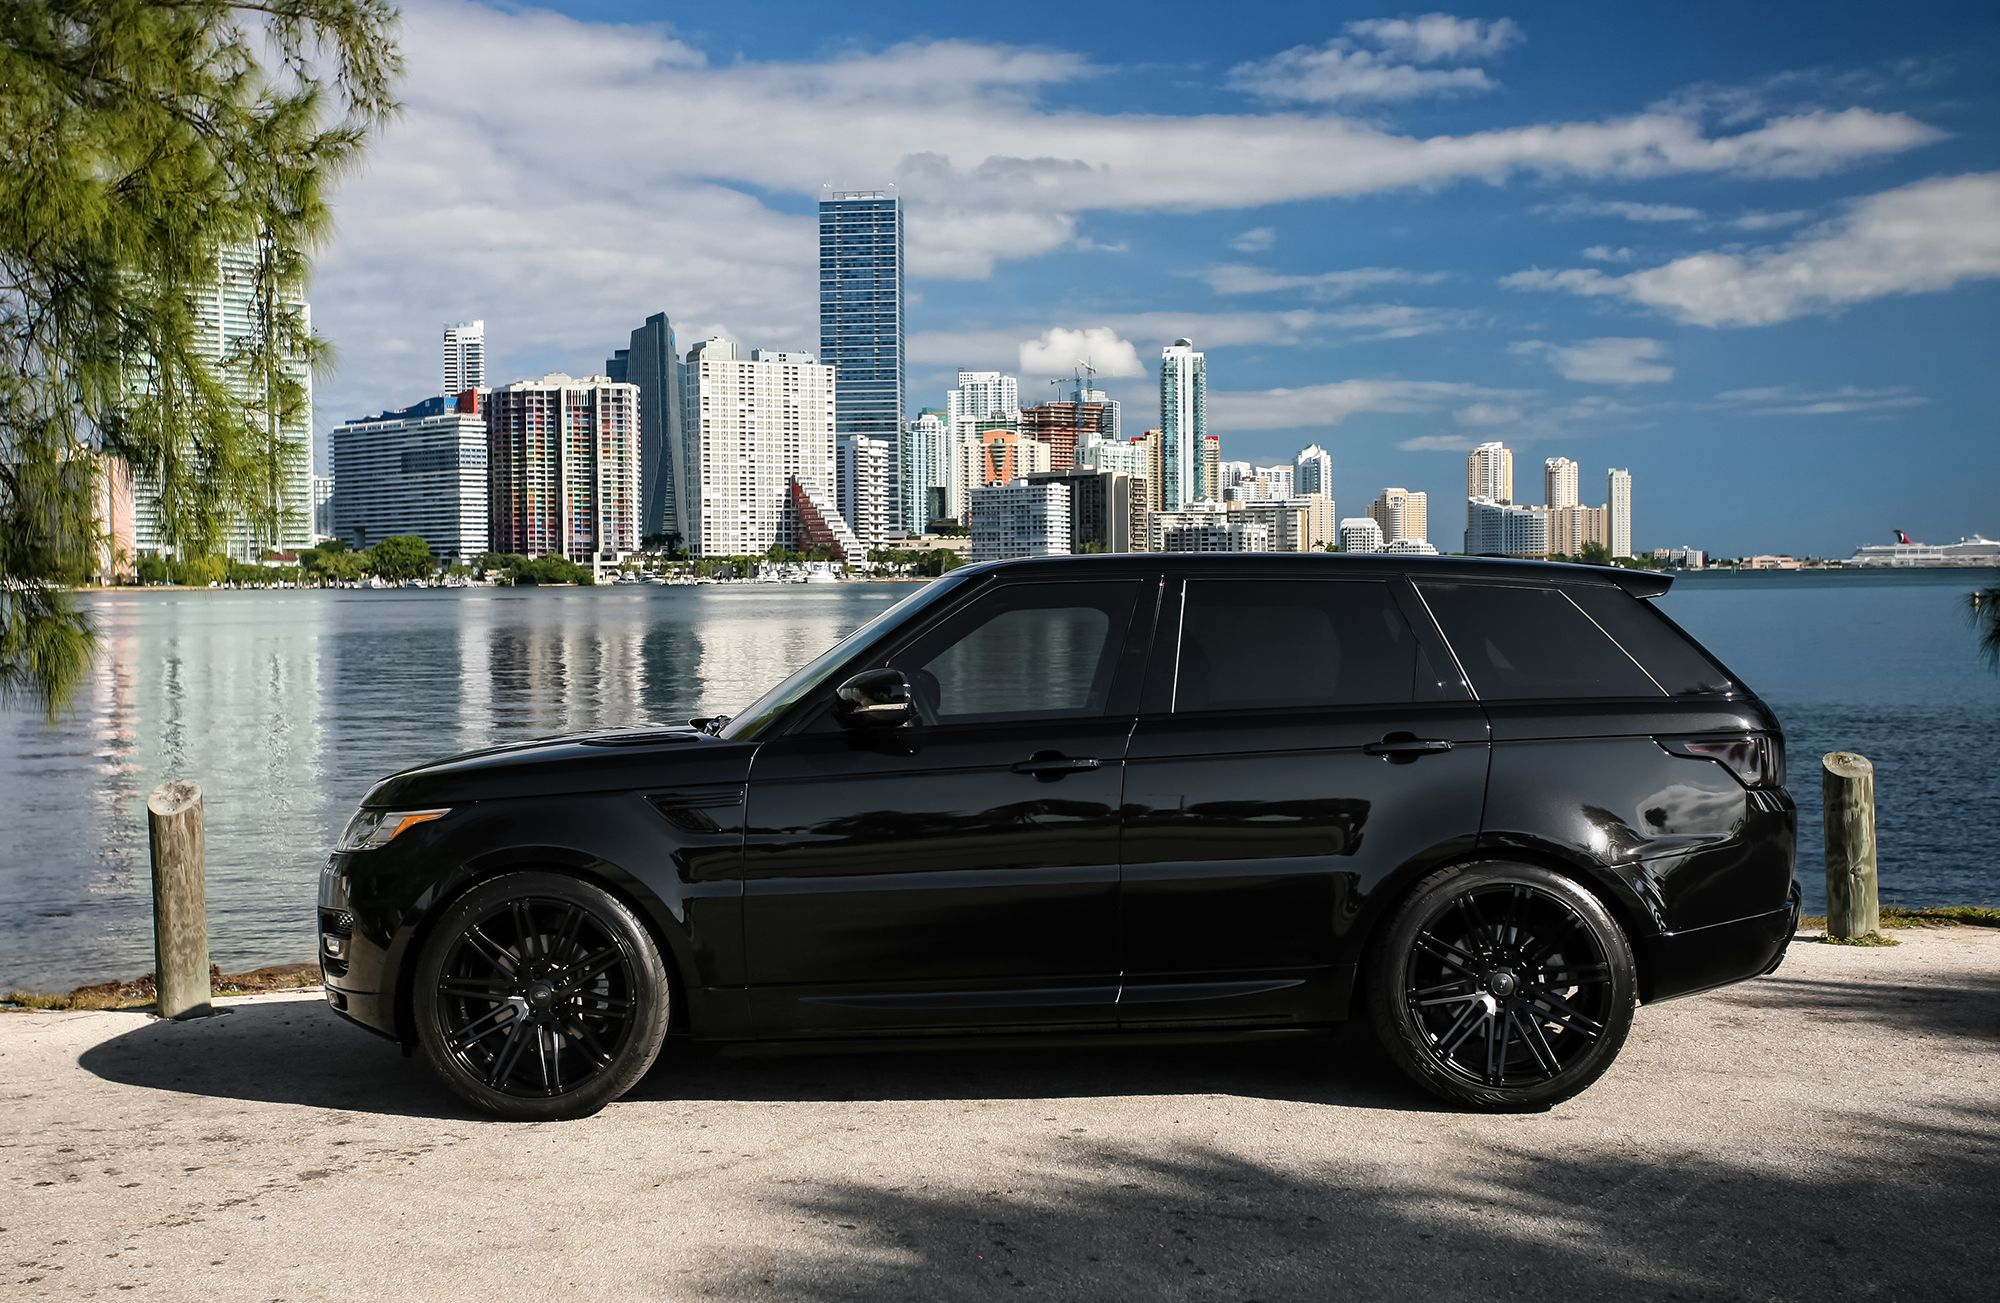 lease land rrs rover pin range sport landrover miami evolved blackonblack